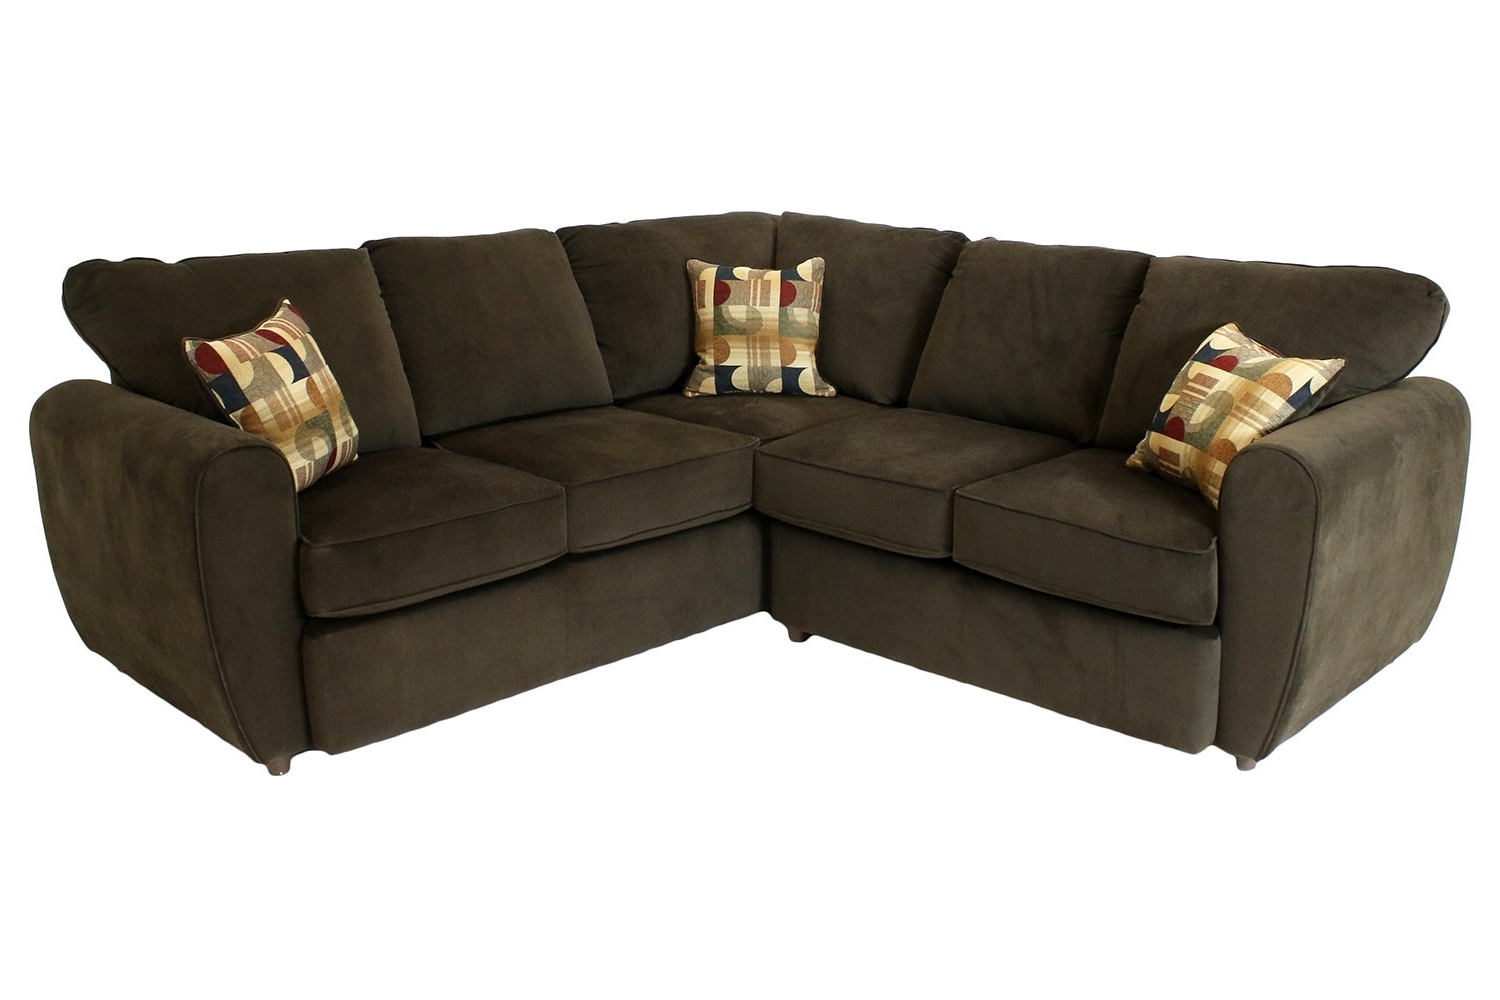 Trendy Sectional Sofas (View 13 of 15)